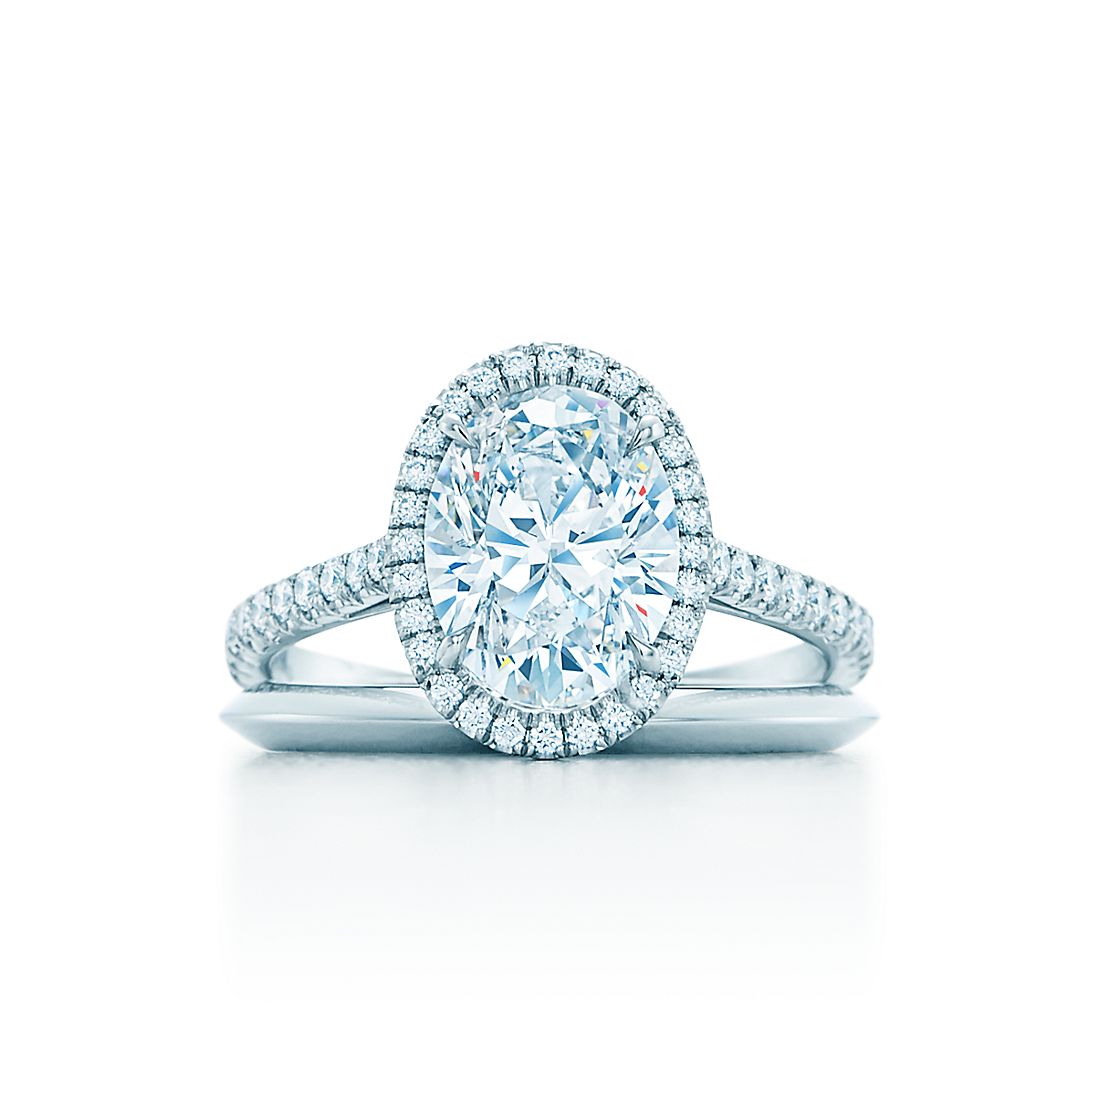 Oval Cut Halo Diamond With Diamond Band Engagement Rings Tiffany Co